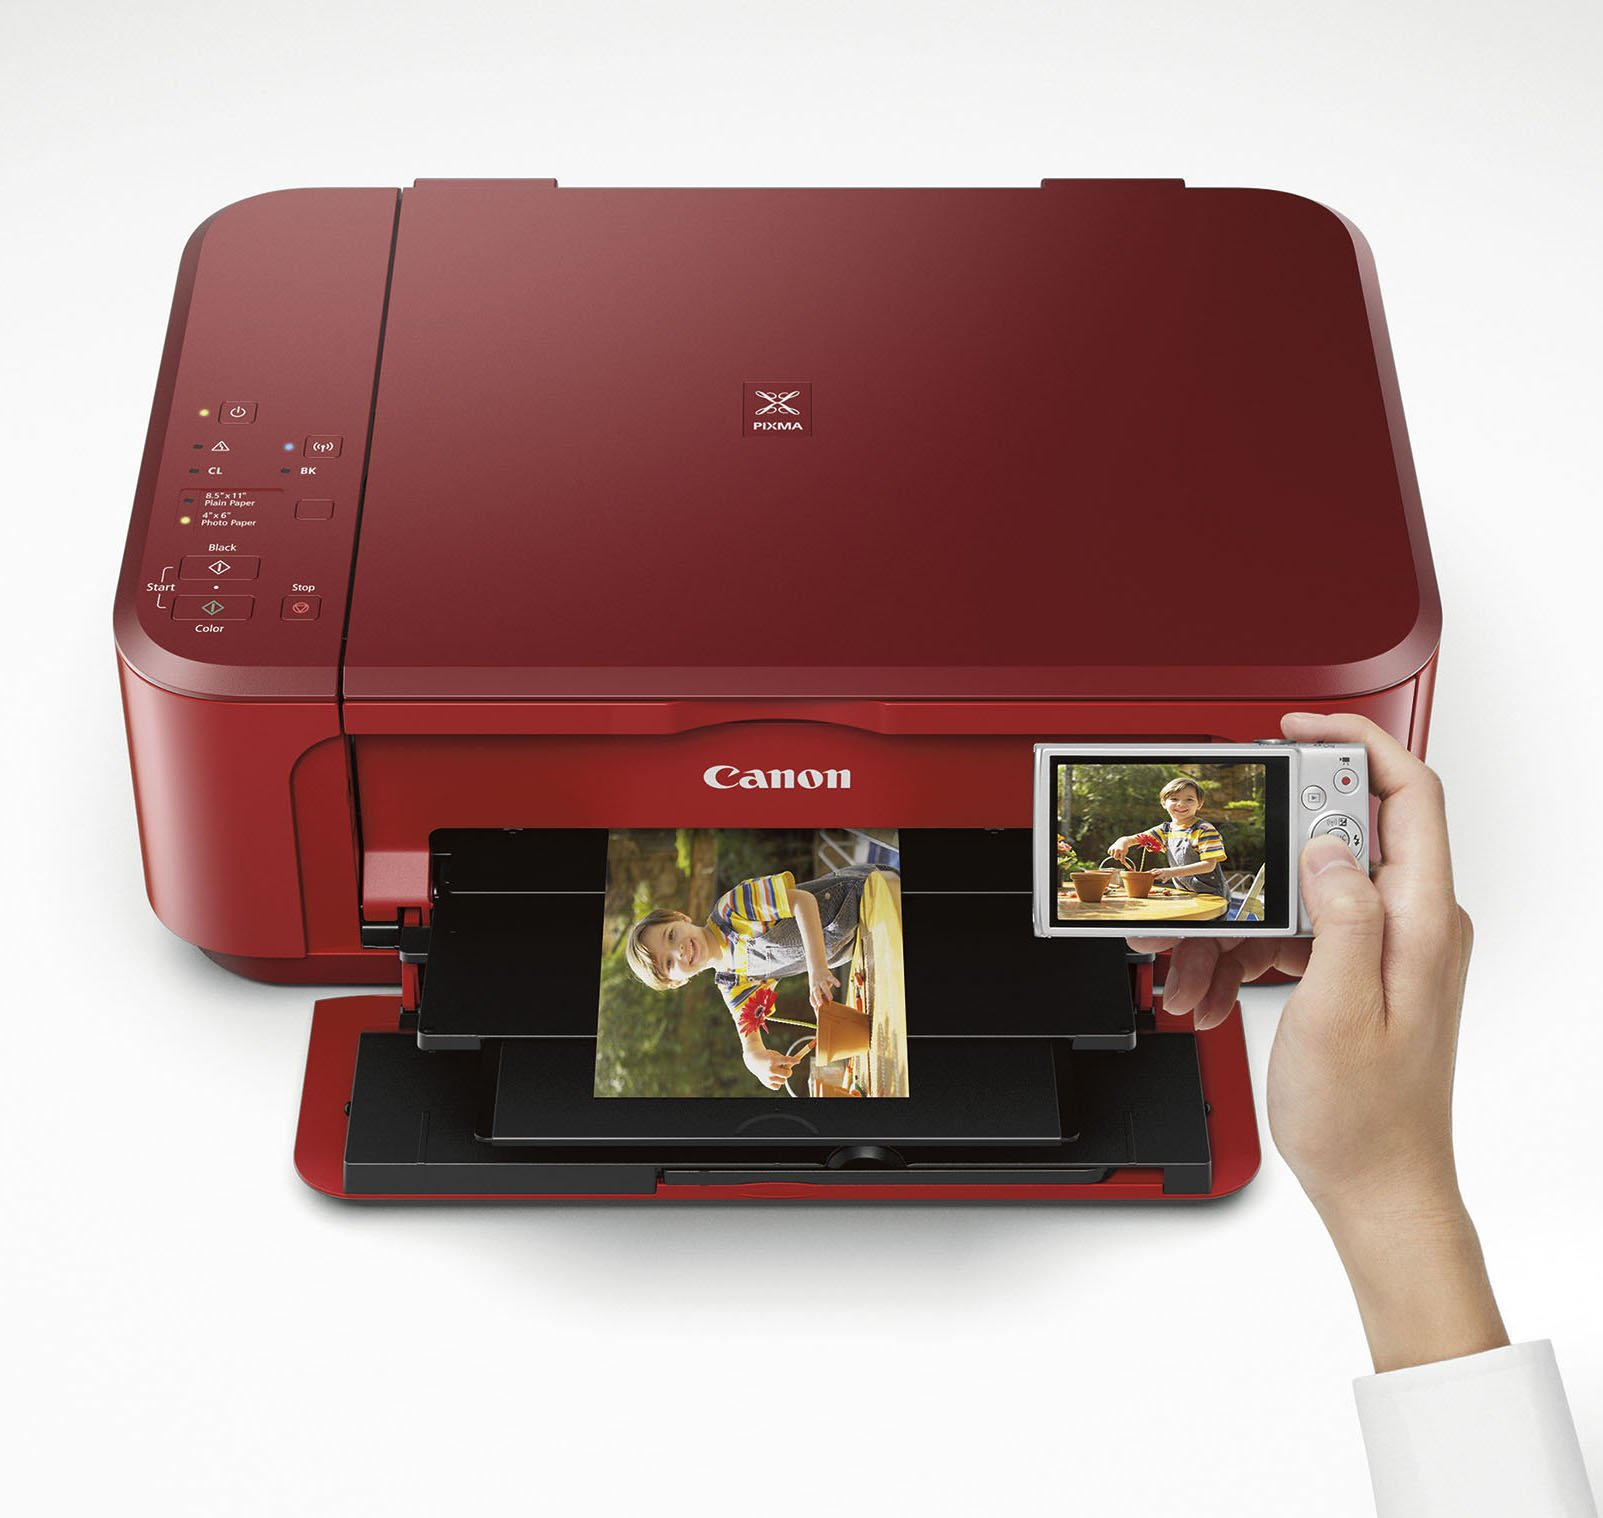 Canon PIXMA MG3620 Wireless All-In-One Color Inkjet Printer with Mobile and Tablet Printing, Red by Canon (Image #5)